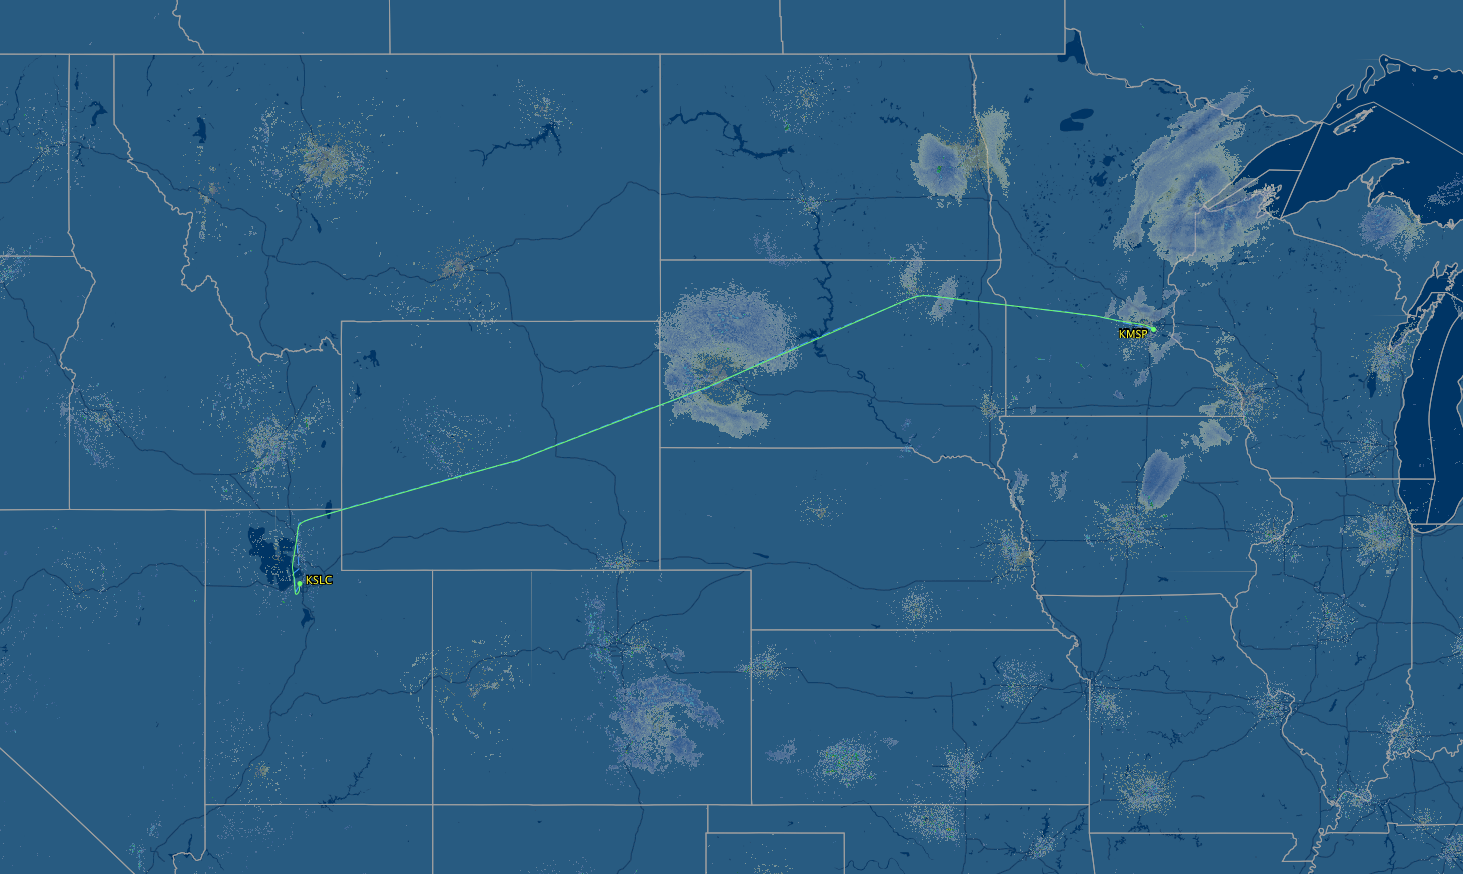 MSP to SLC air route